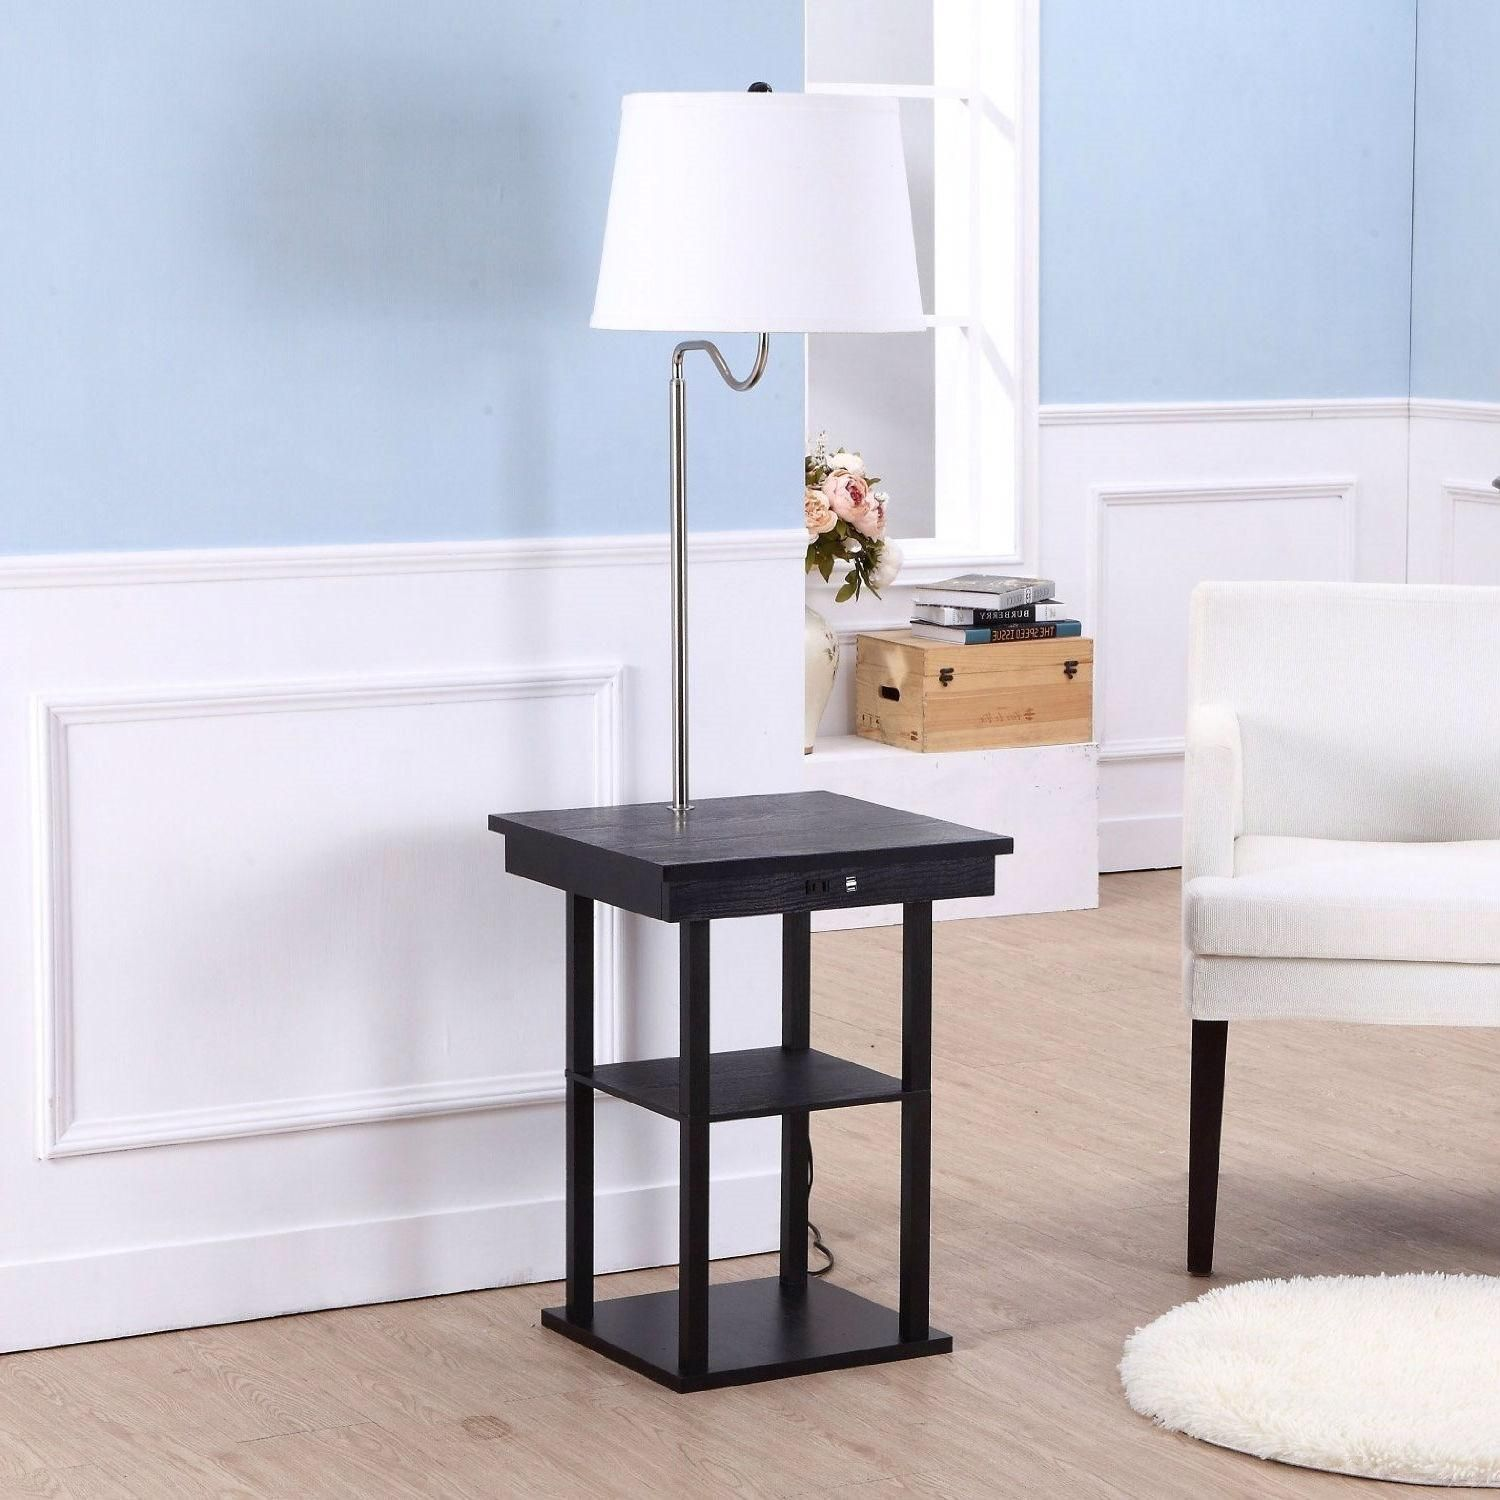 Modern Side Table Floor Lamp With White Shade USB Ports Built In Outlet